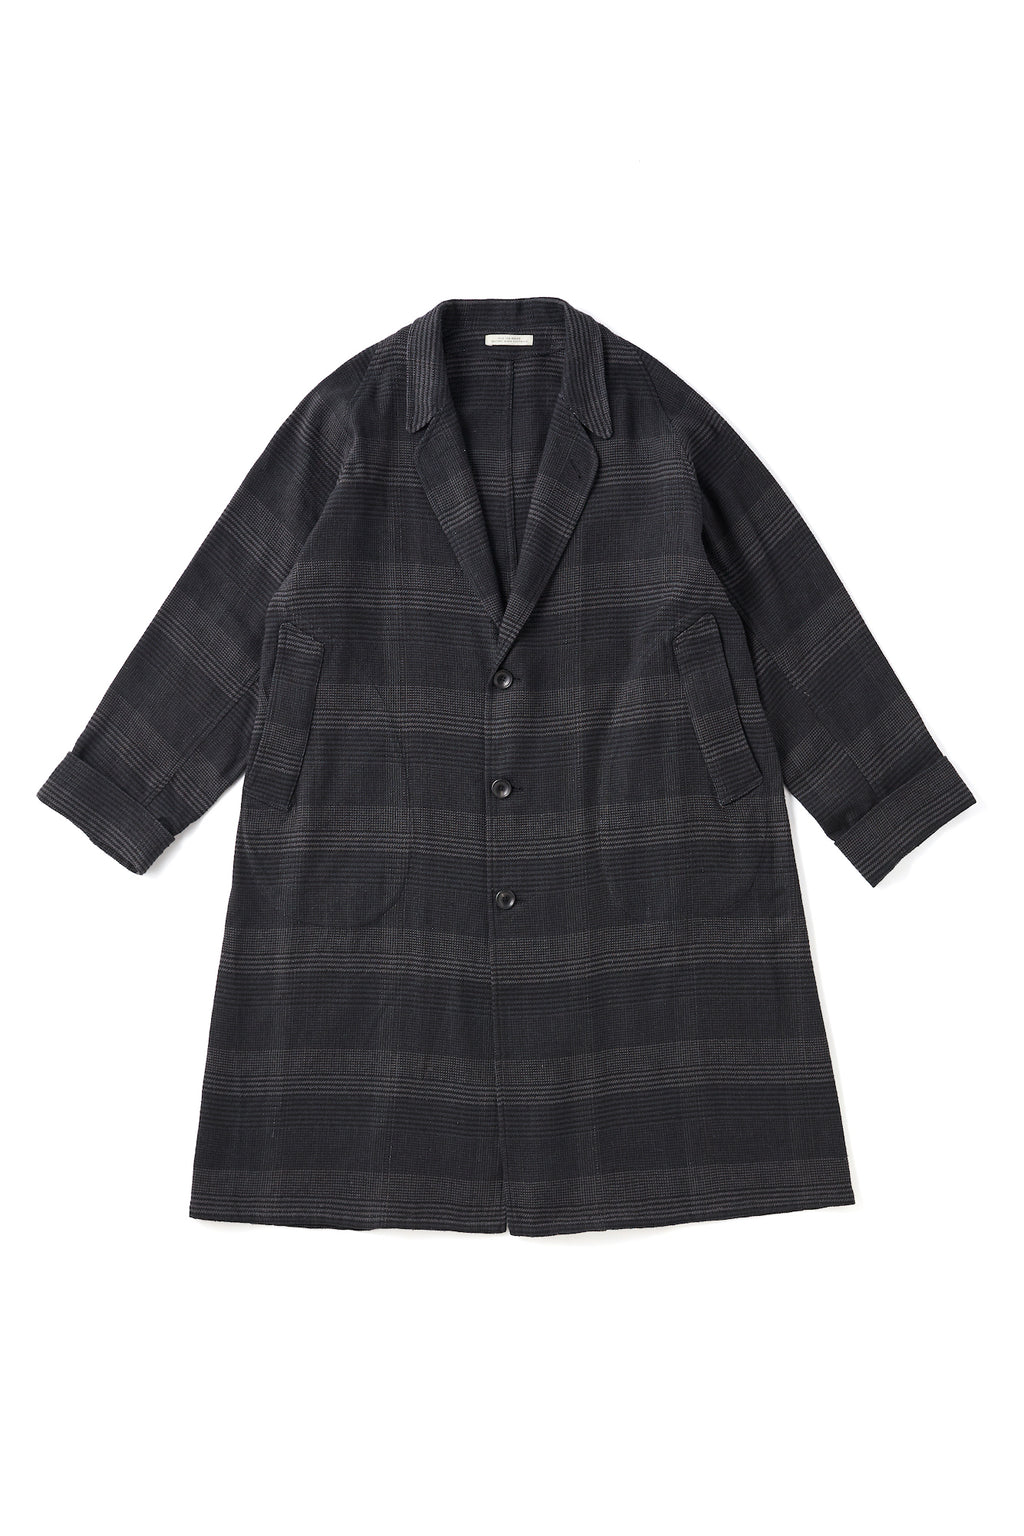 NARROW RAPEL DUSTER COAT - 201OJ-JK06